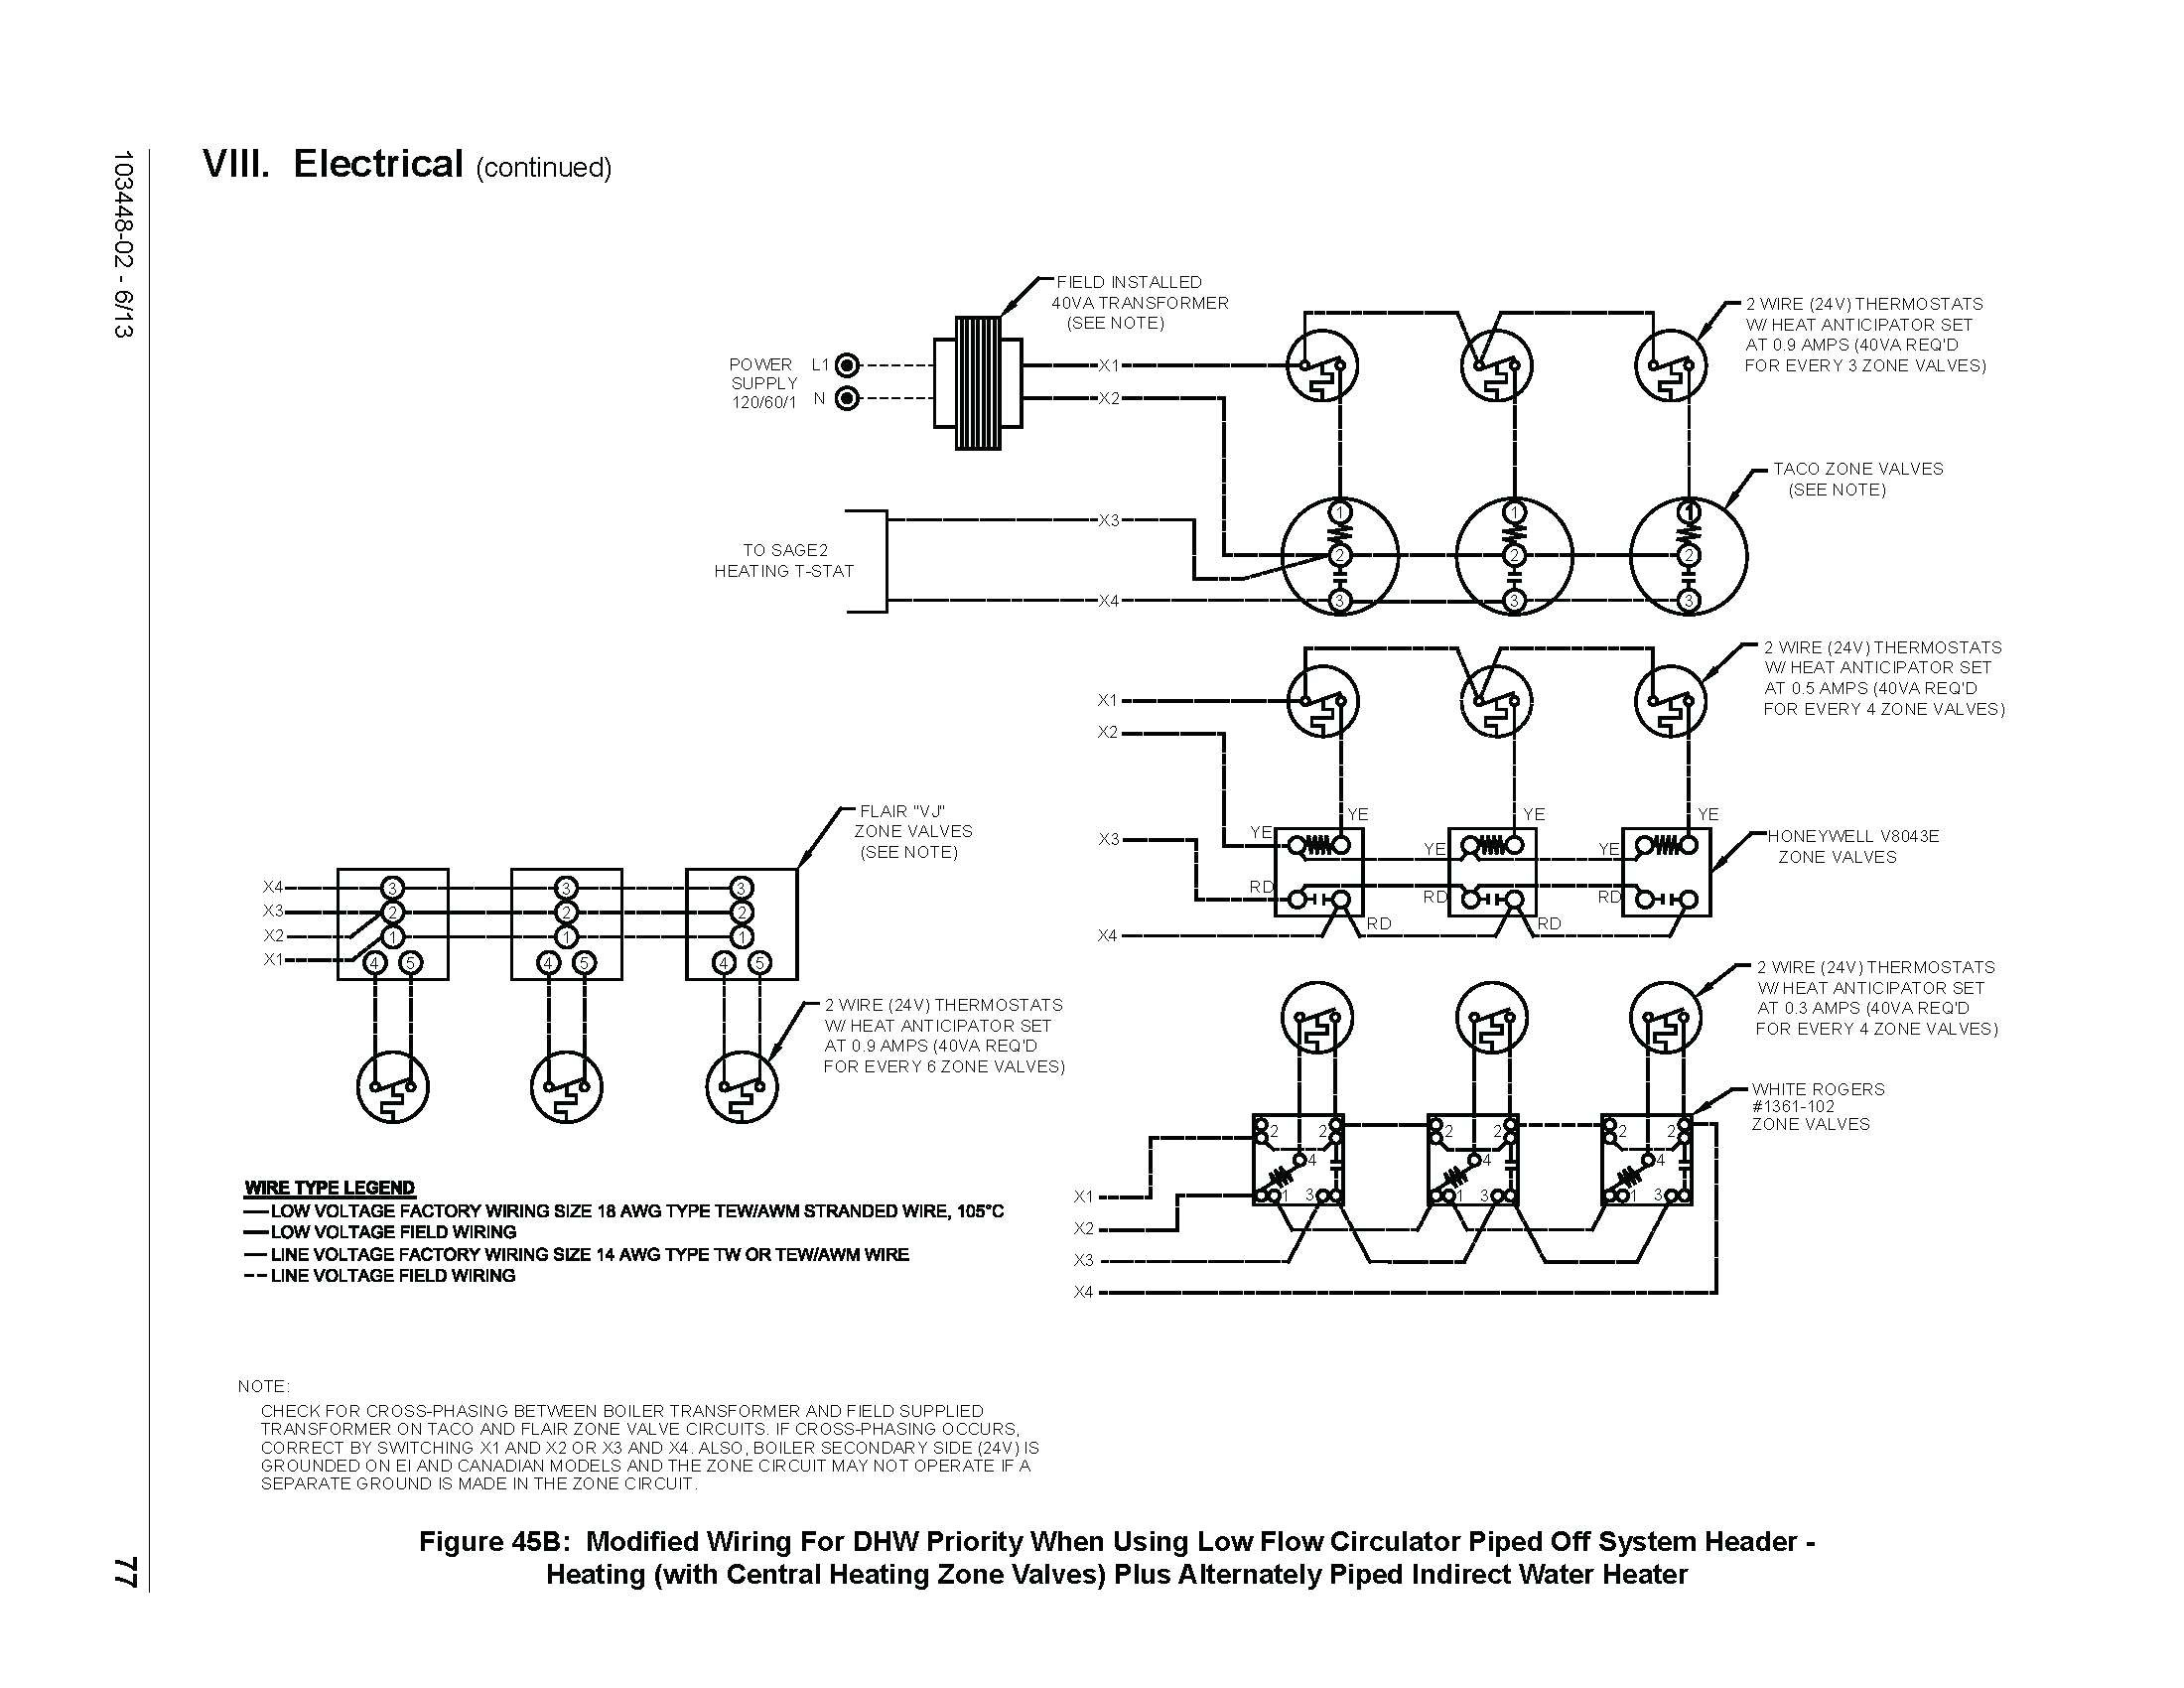 Electric Baseboard Thermostat Wiring Diagram from mainetreasurechest.com